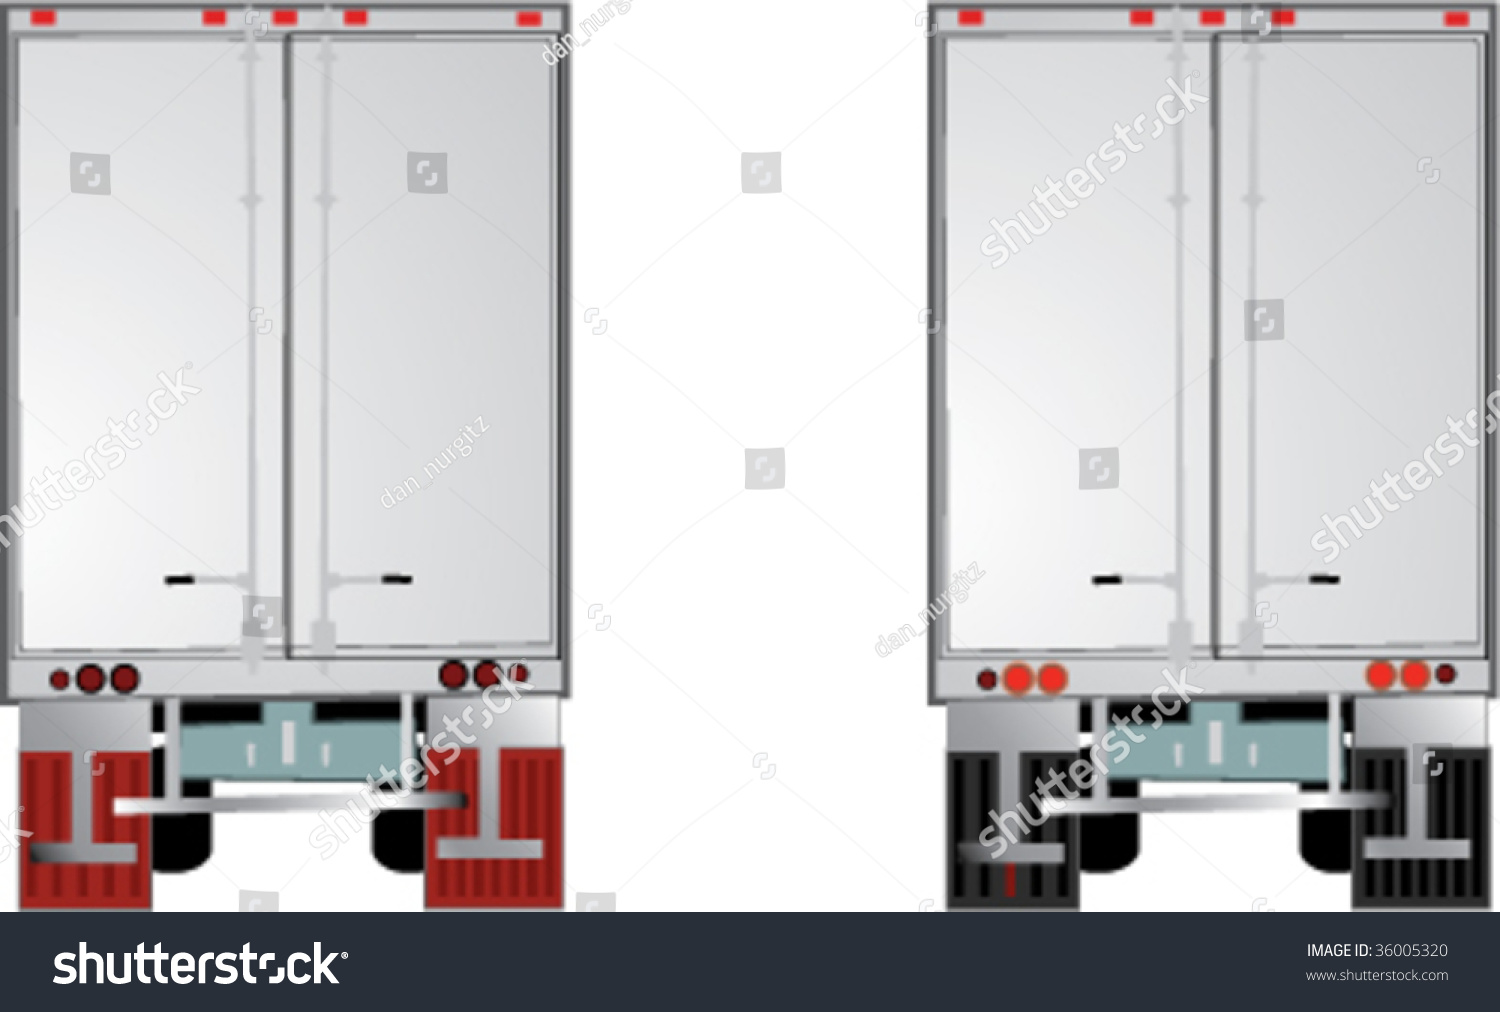 Tractor Trailer Rear View Stock Vector 36005320 Shutterstock